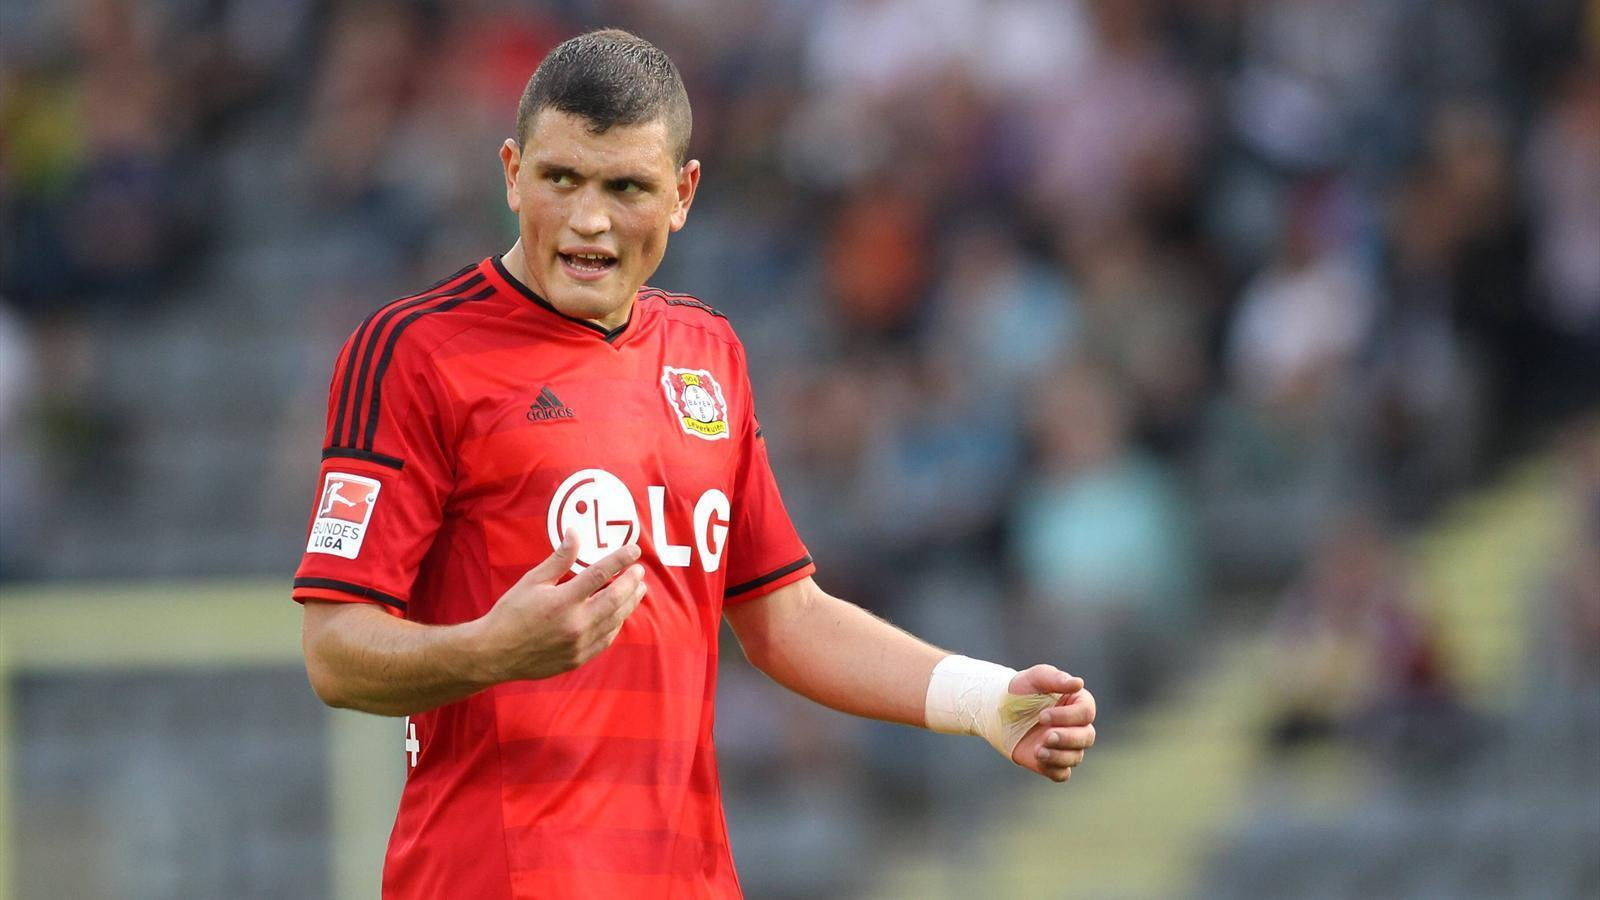 wallpaper_bayer-leverkusen_kyriakos-papadopoulos